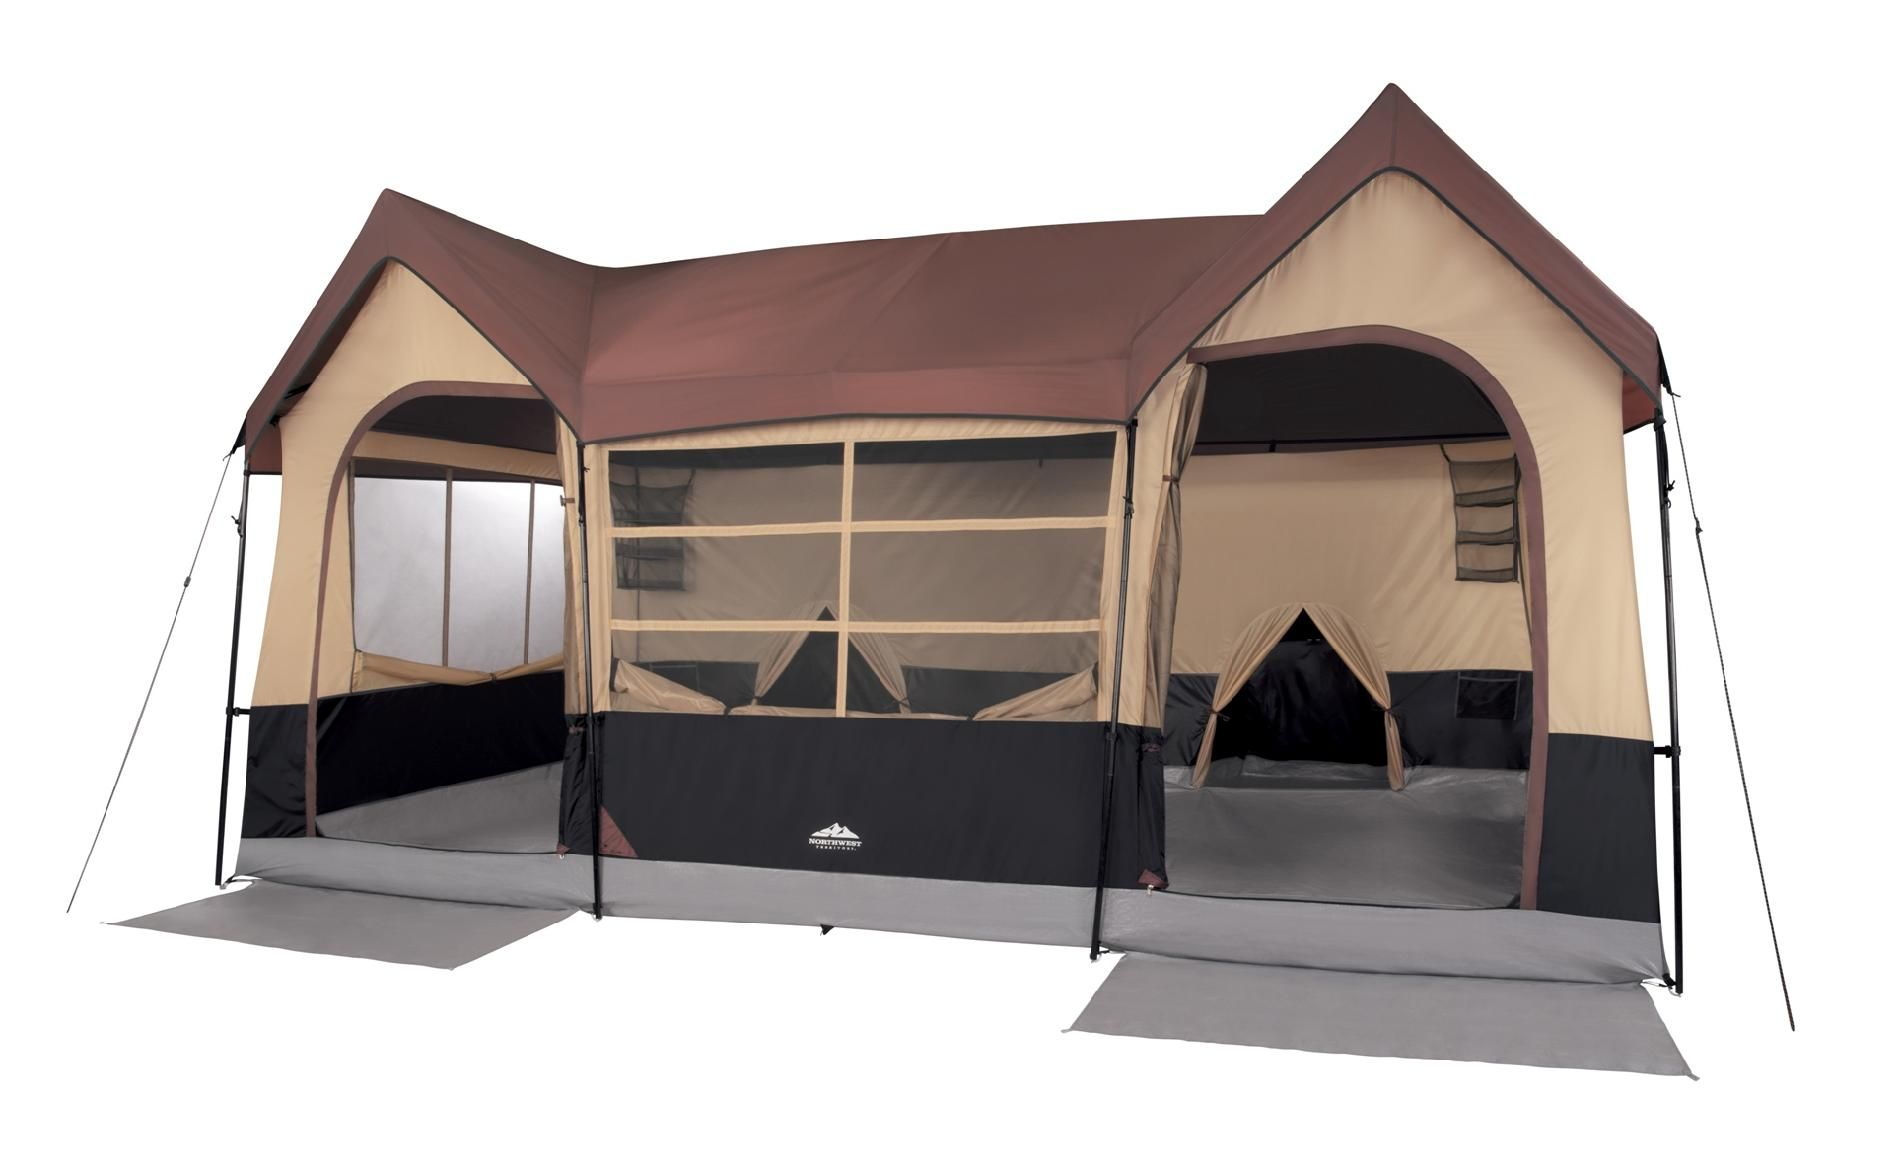 Coolest tent ever! It has 2 closets and will sleep 10 people. Think of the party possibilities! (Northwest Territory -Big Sky Lodge Tent - 16 x - ...  sc 1 st  Pinterest & 10 Person Weather Resistant Tent: Feel at Home Anywhere with Sears ...